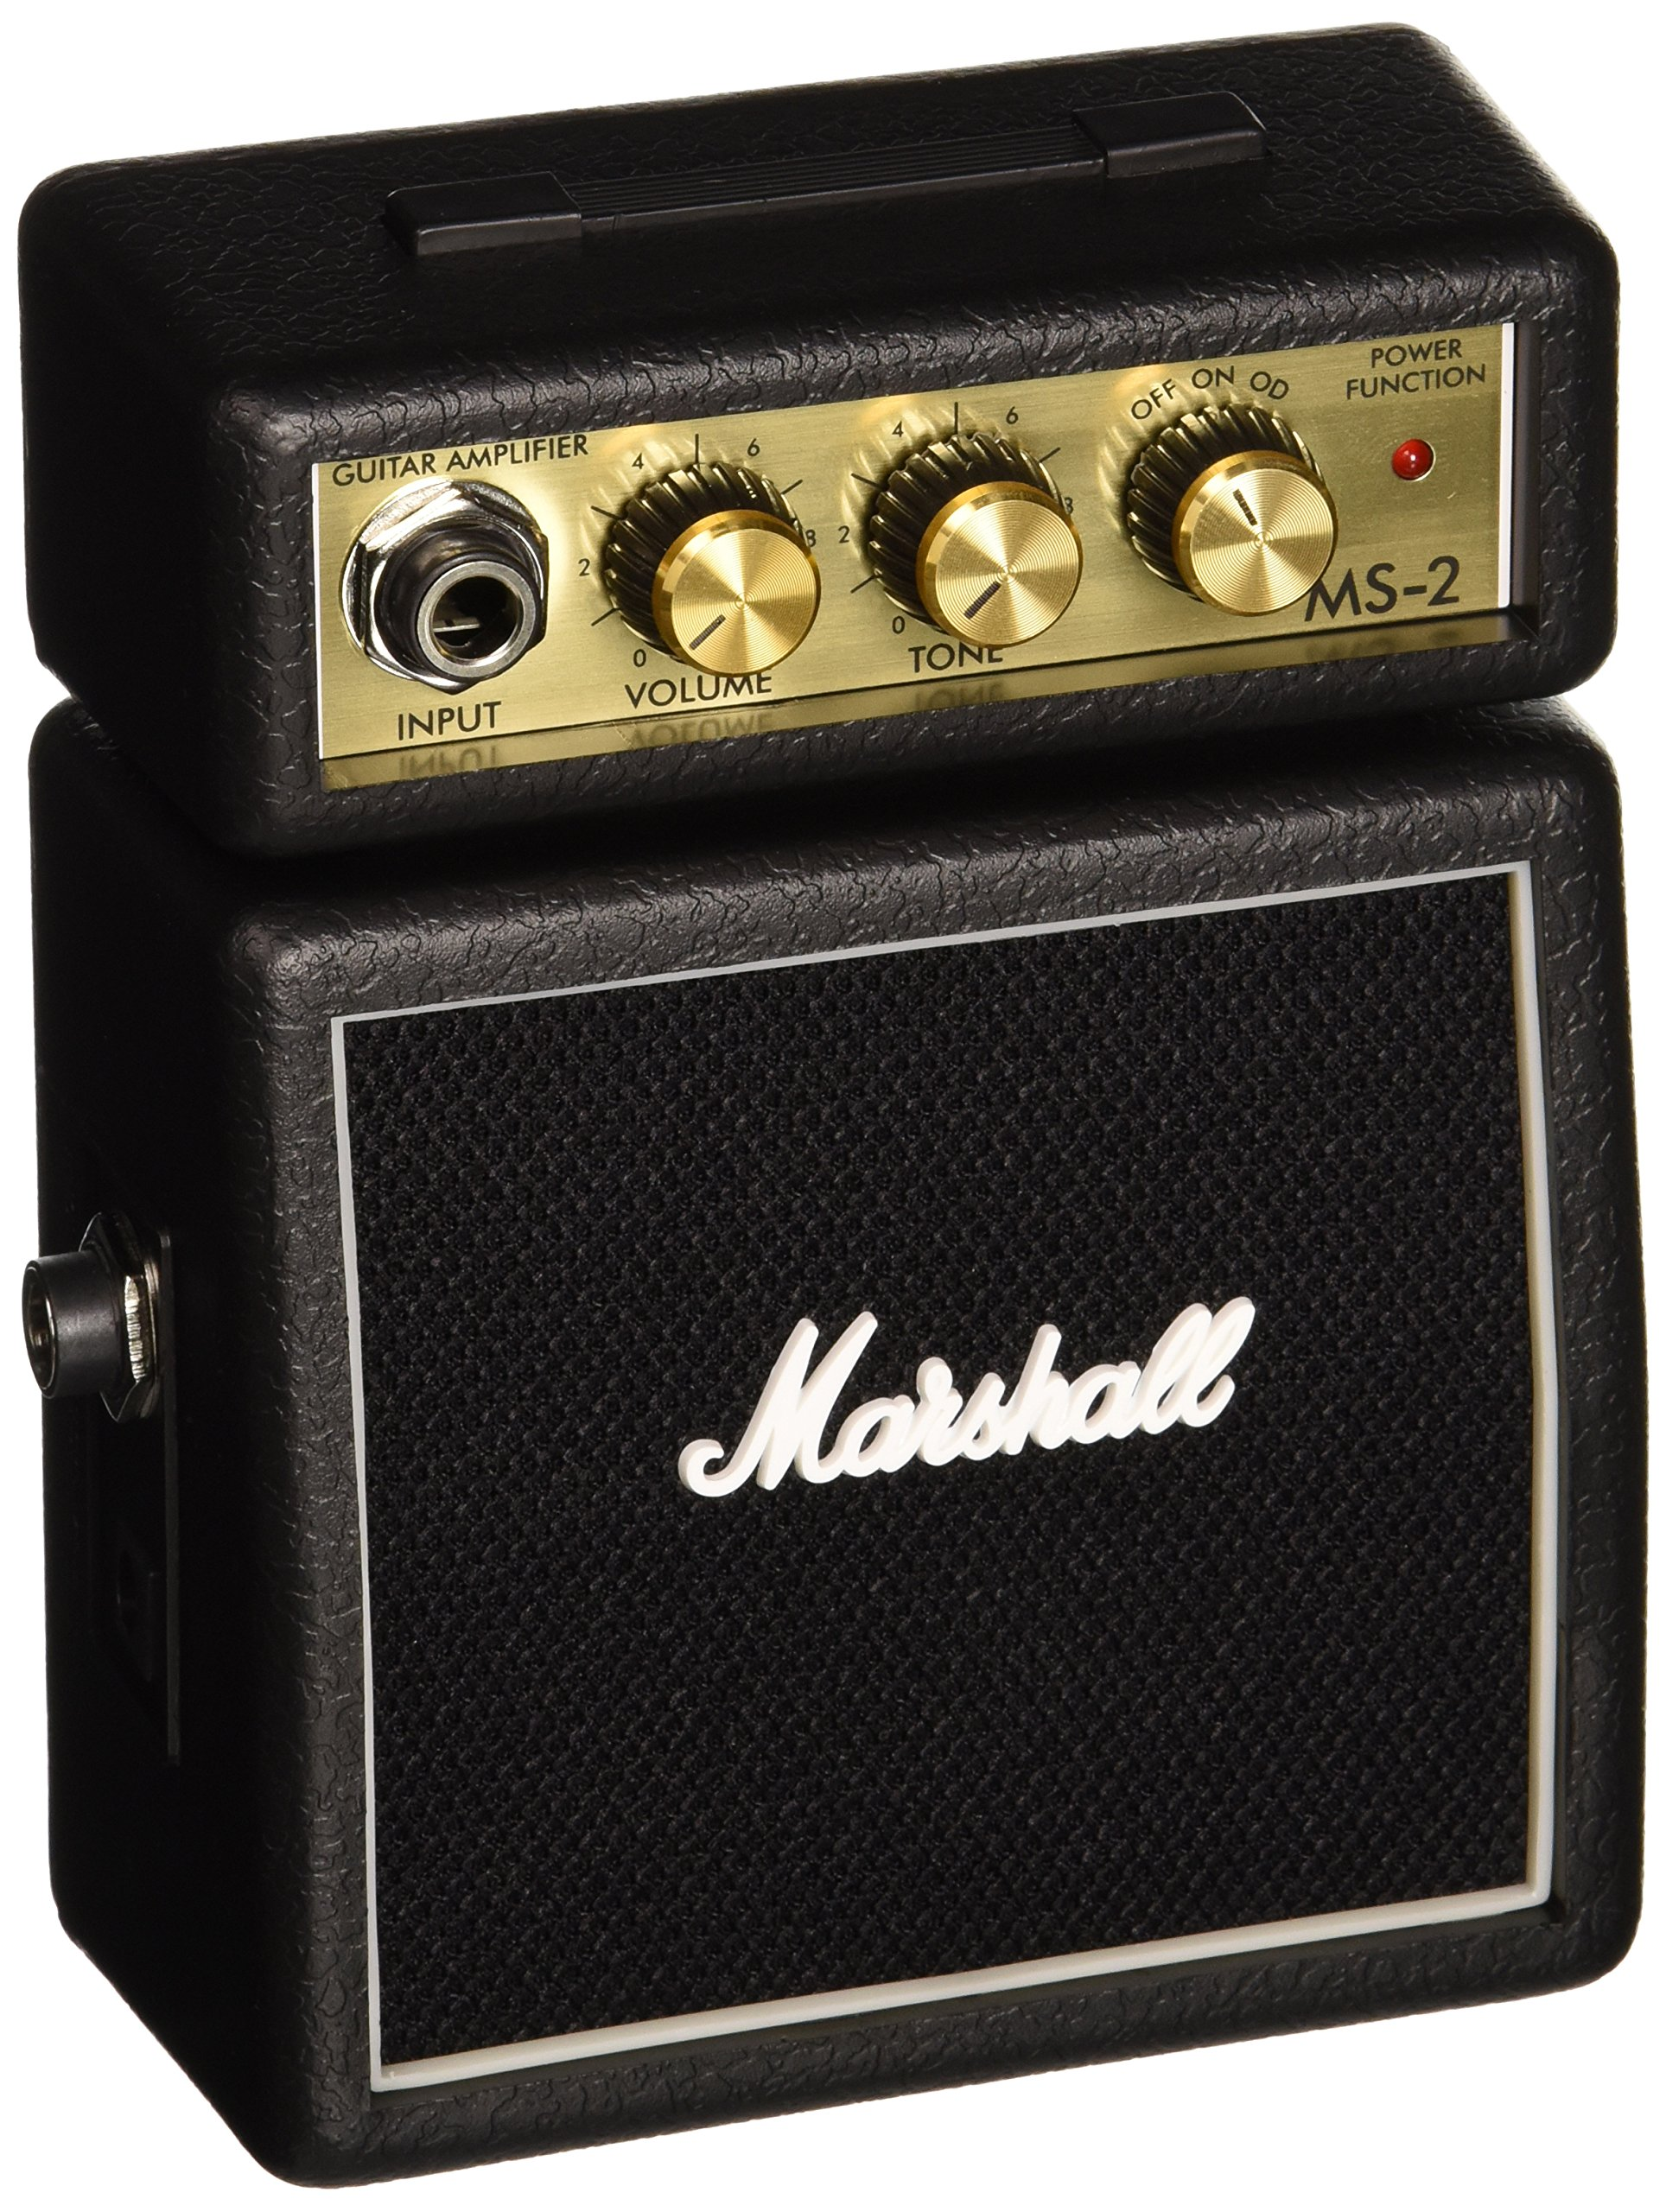 Marshall MS-2 - Amplificador para guitarra (2W, 6.3 mm), color